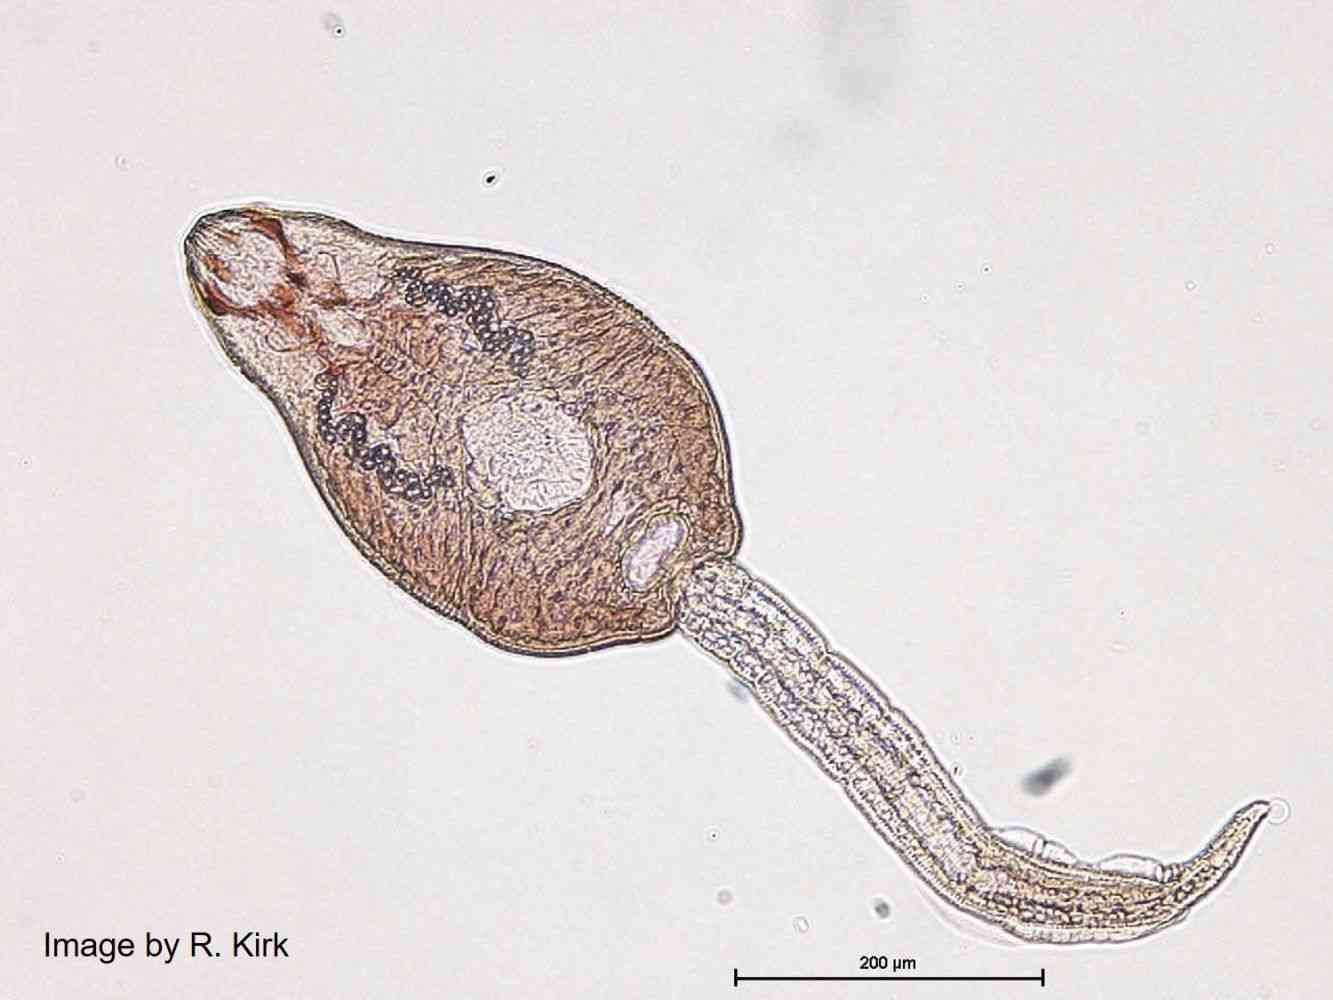 Cercaria of Echinostoma revolutum, an echinostome parasite - Echinostoma revolutum is distributed worldwide, but only causes disease when raw or undercooked second intermediate hosts (e.g. fish, molluscs, frogs) are traditionally eaten as in E and SE Asia.